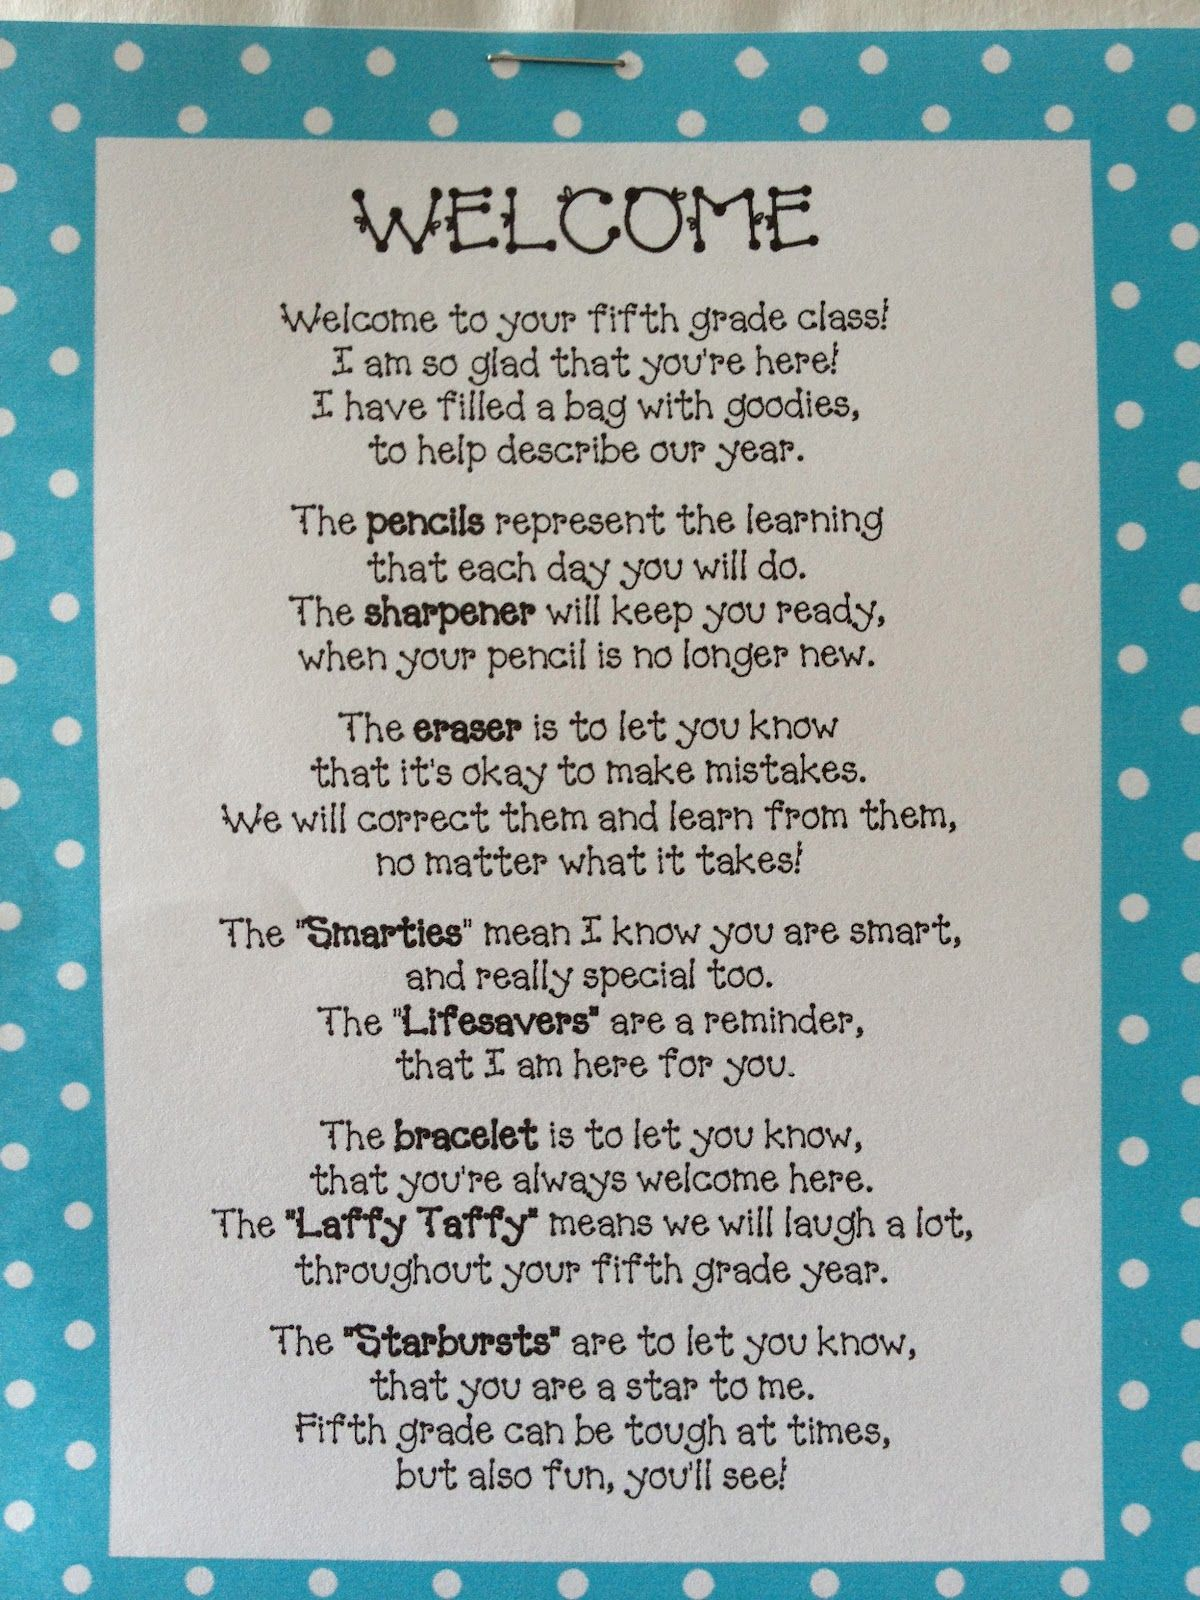 Welcome Back Poem Filled With Goodies Bags included the ...